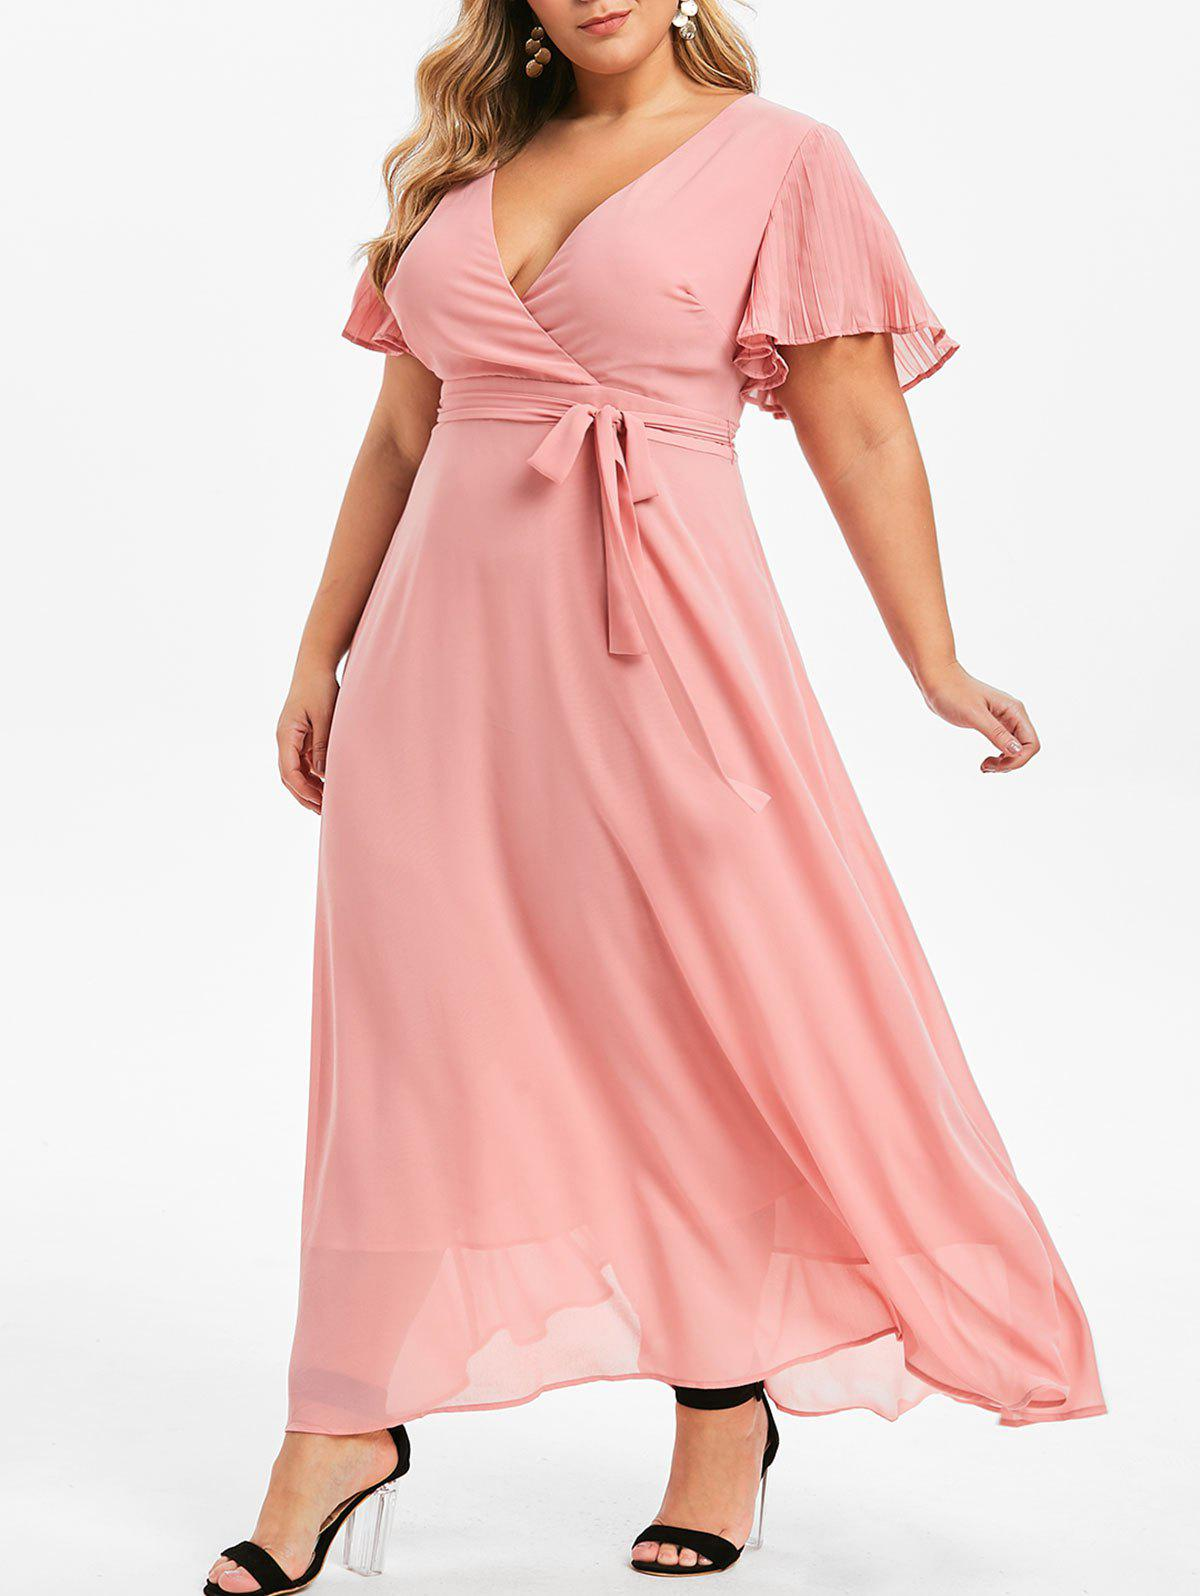 43% OFF] Plus Size Plunging Neckline Maxi A Line Dress | Rosegal